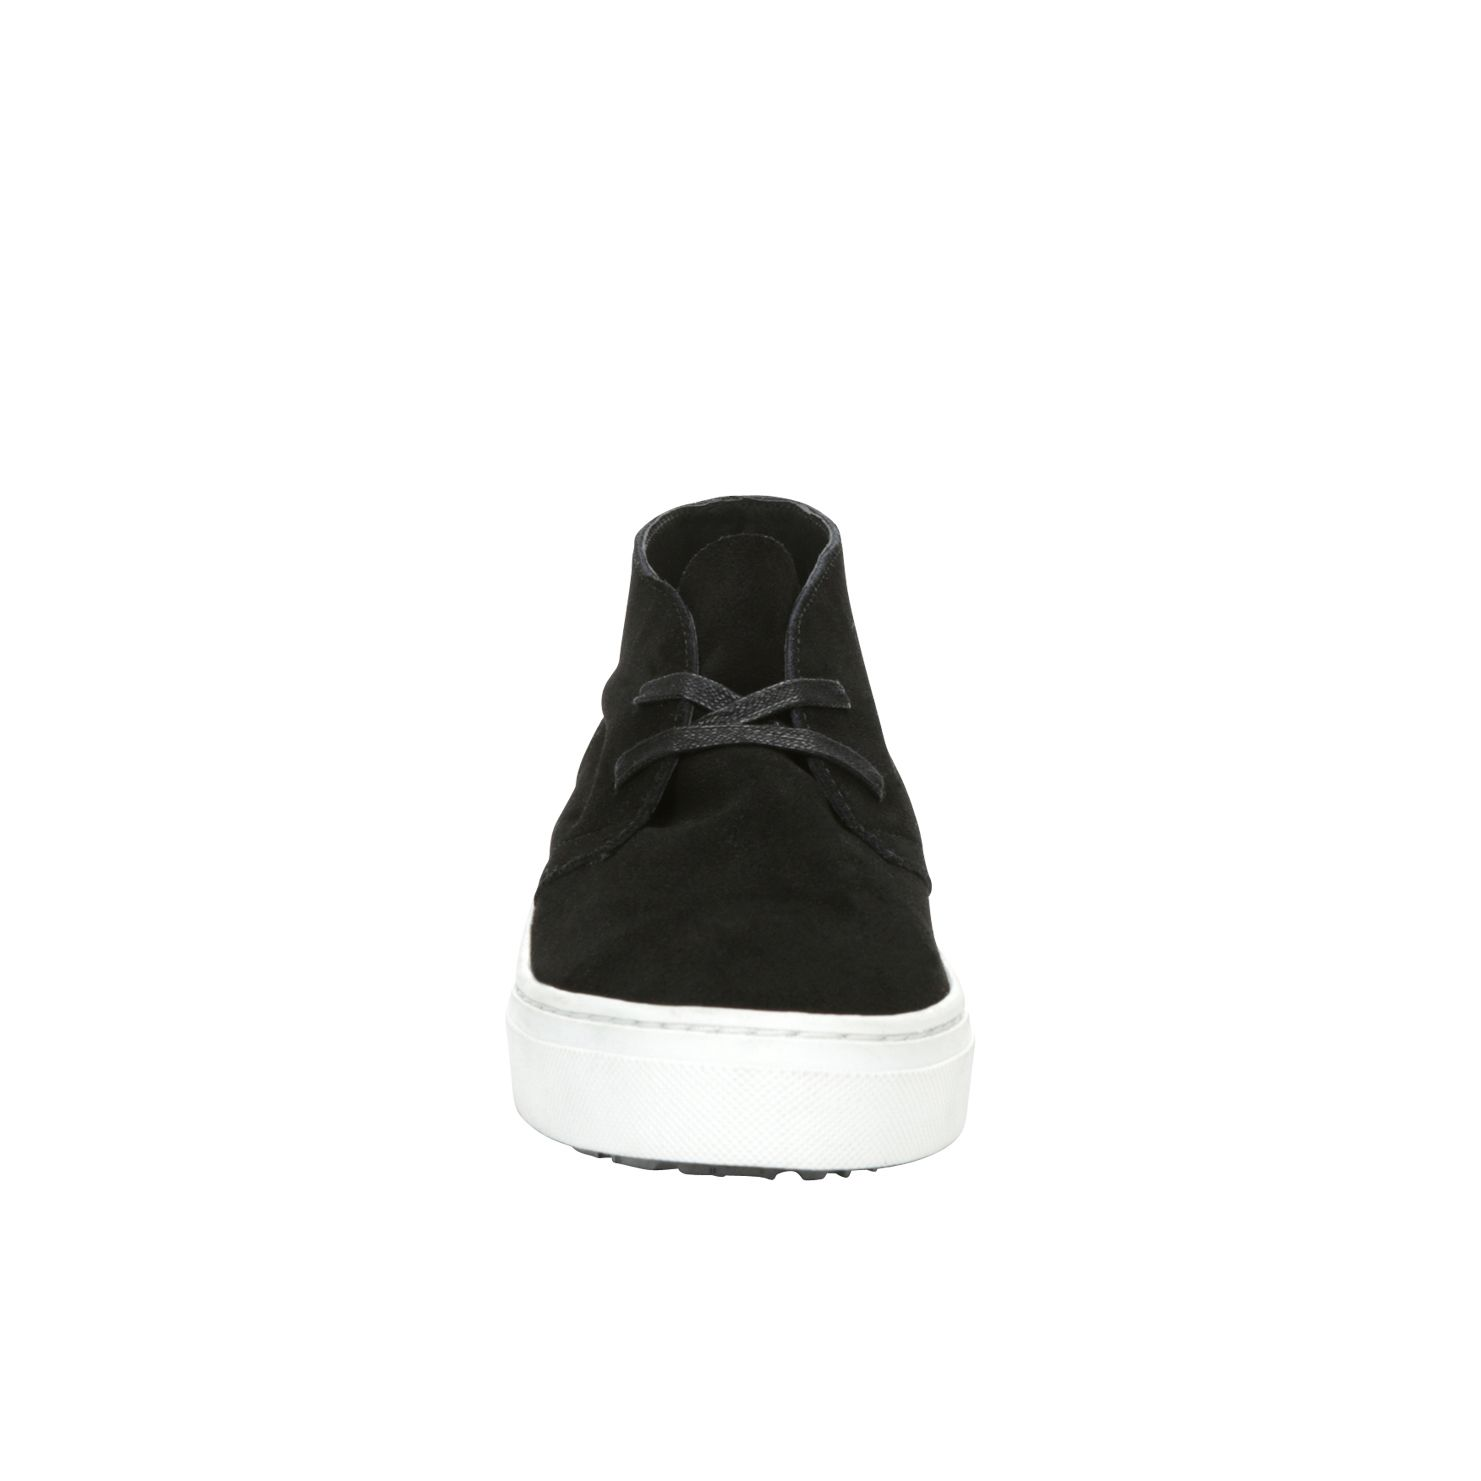 Eowieniel flatform lace up trainer shoes